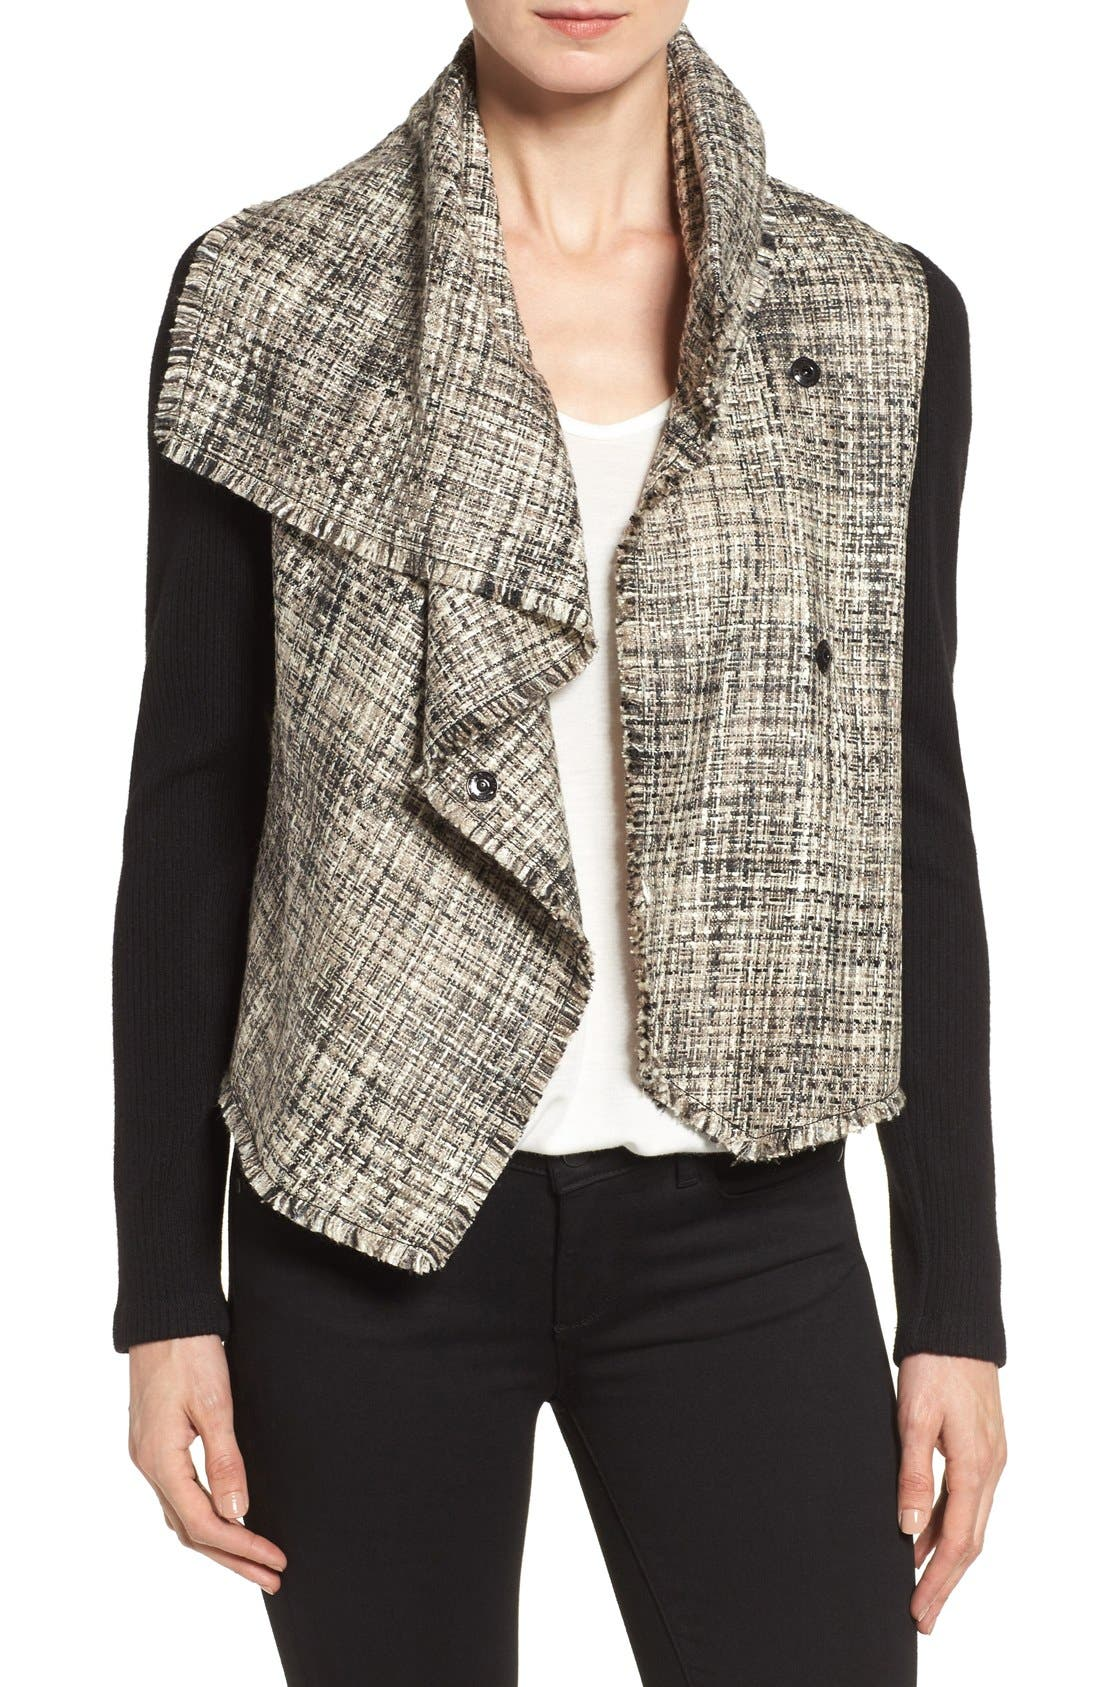 ANNE KLEIN Mixed Media Drape Front Jacket, Main, color, 001